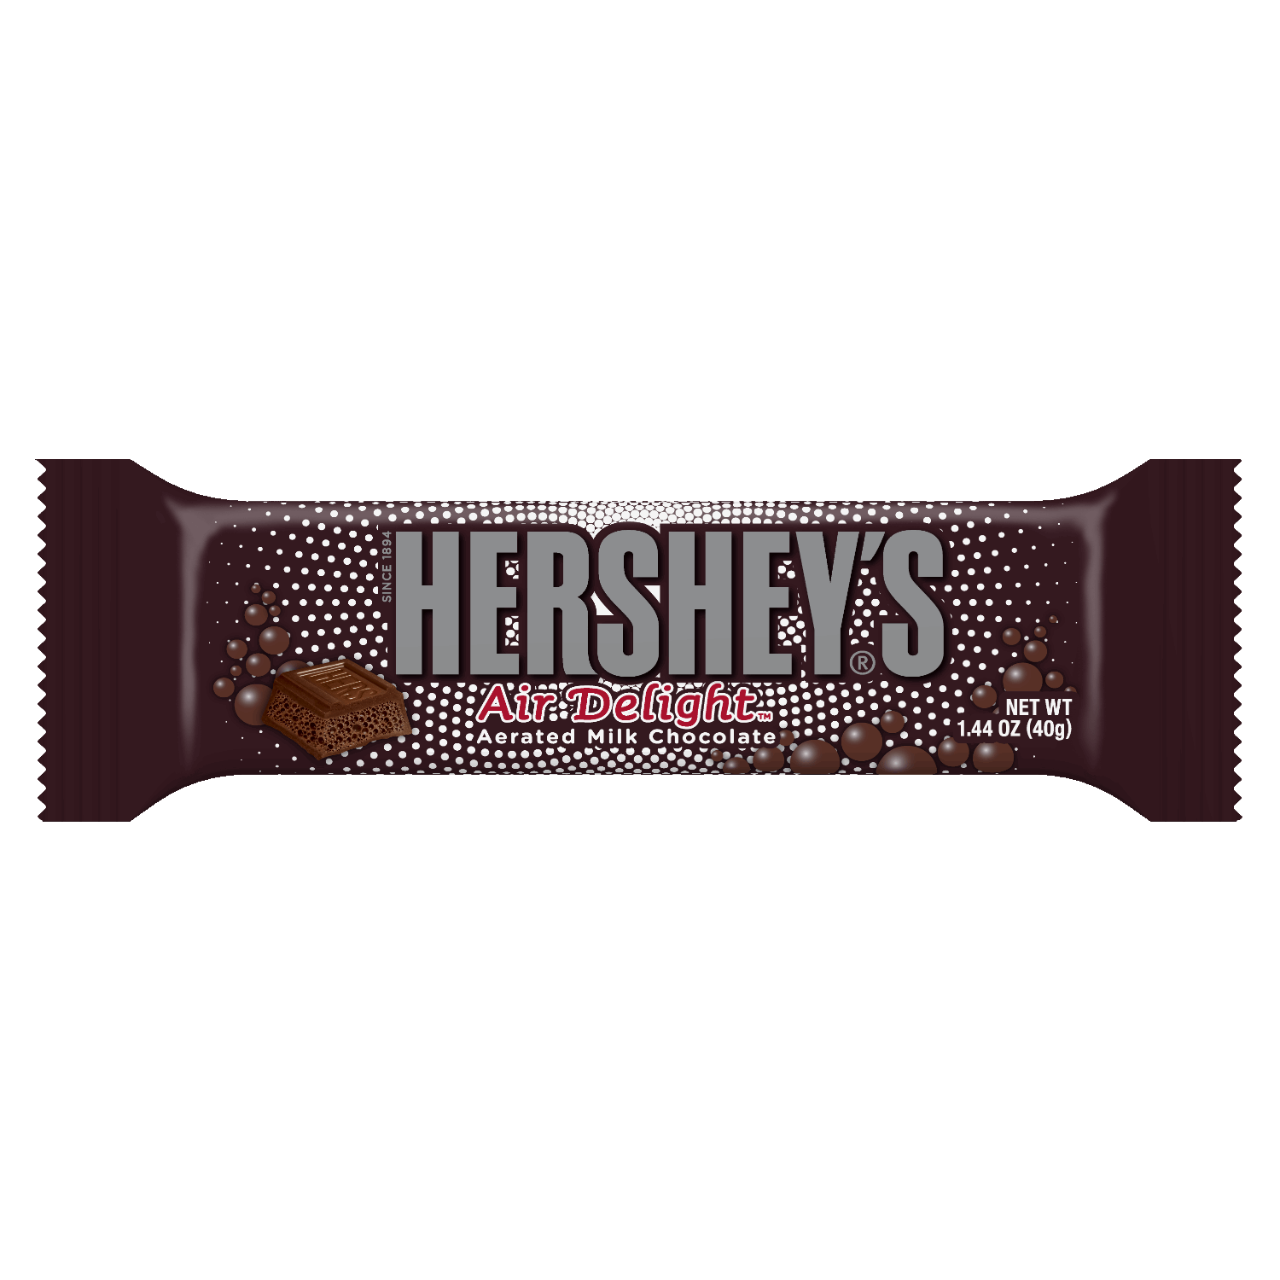 The Hershey Company | HERSHEY'S AIR DELIGHT Aerated Milk Chocolate ...